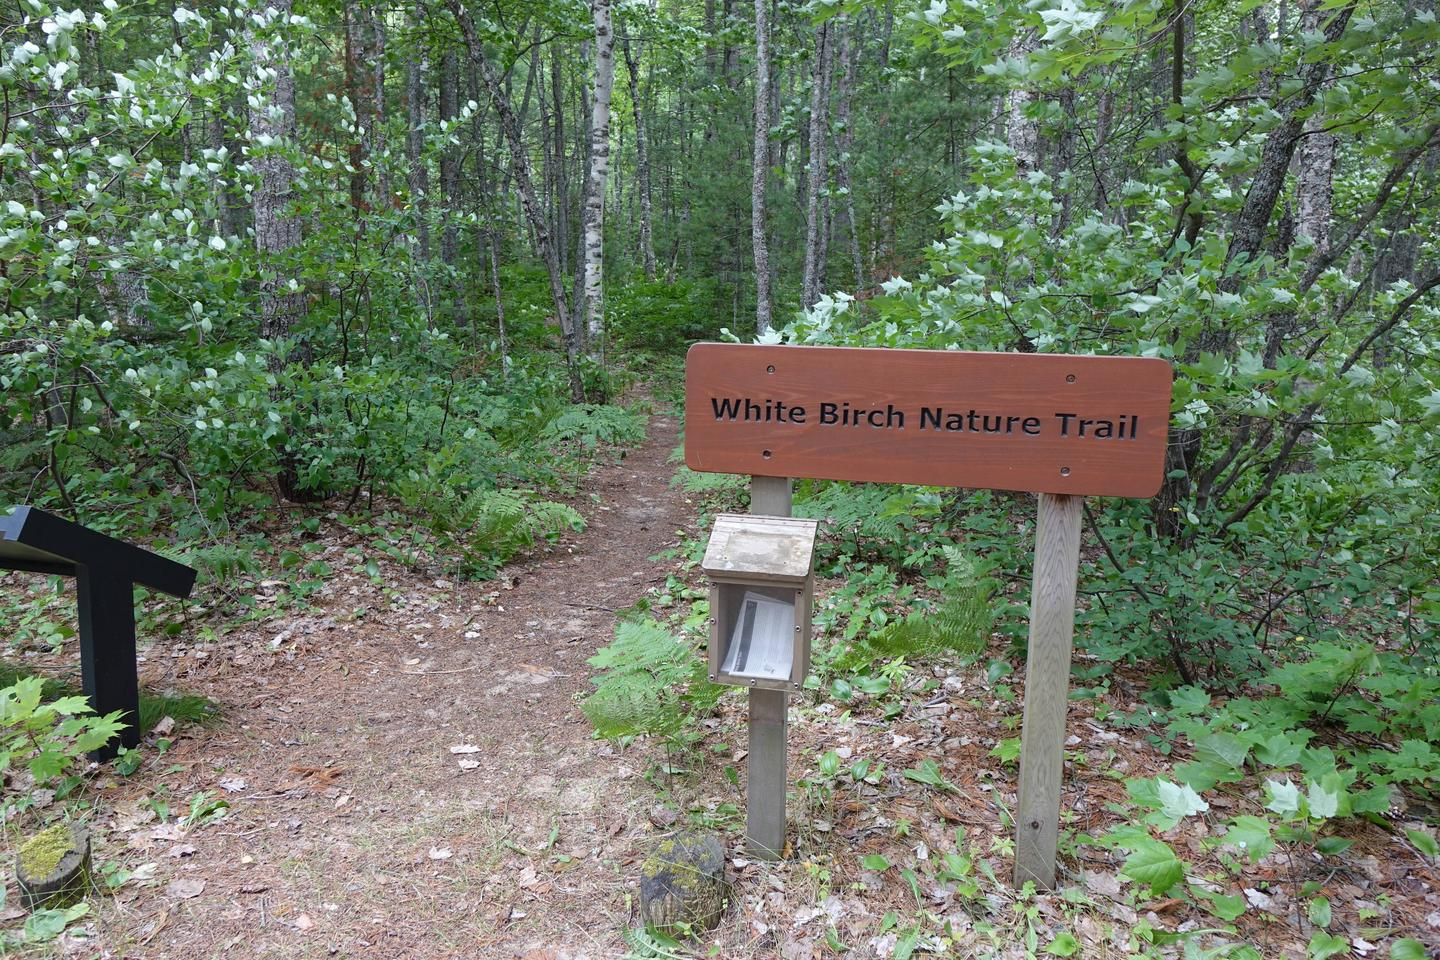 White Birch trail head at Twelvemile campground